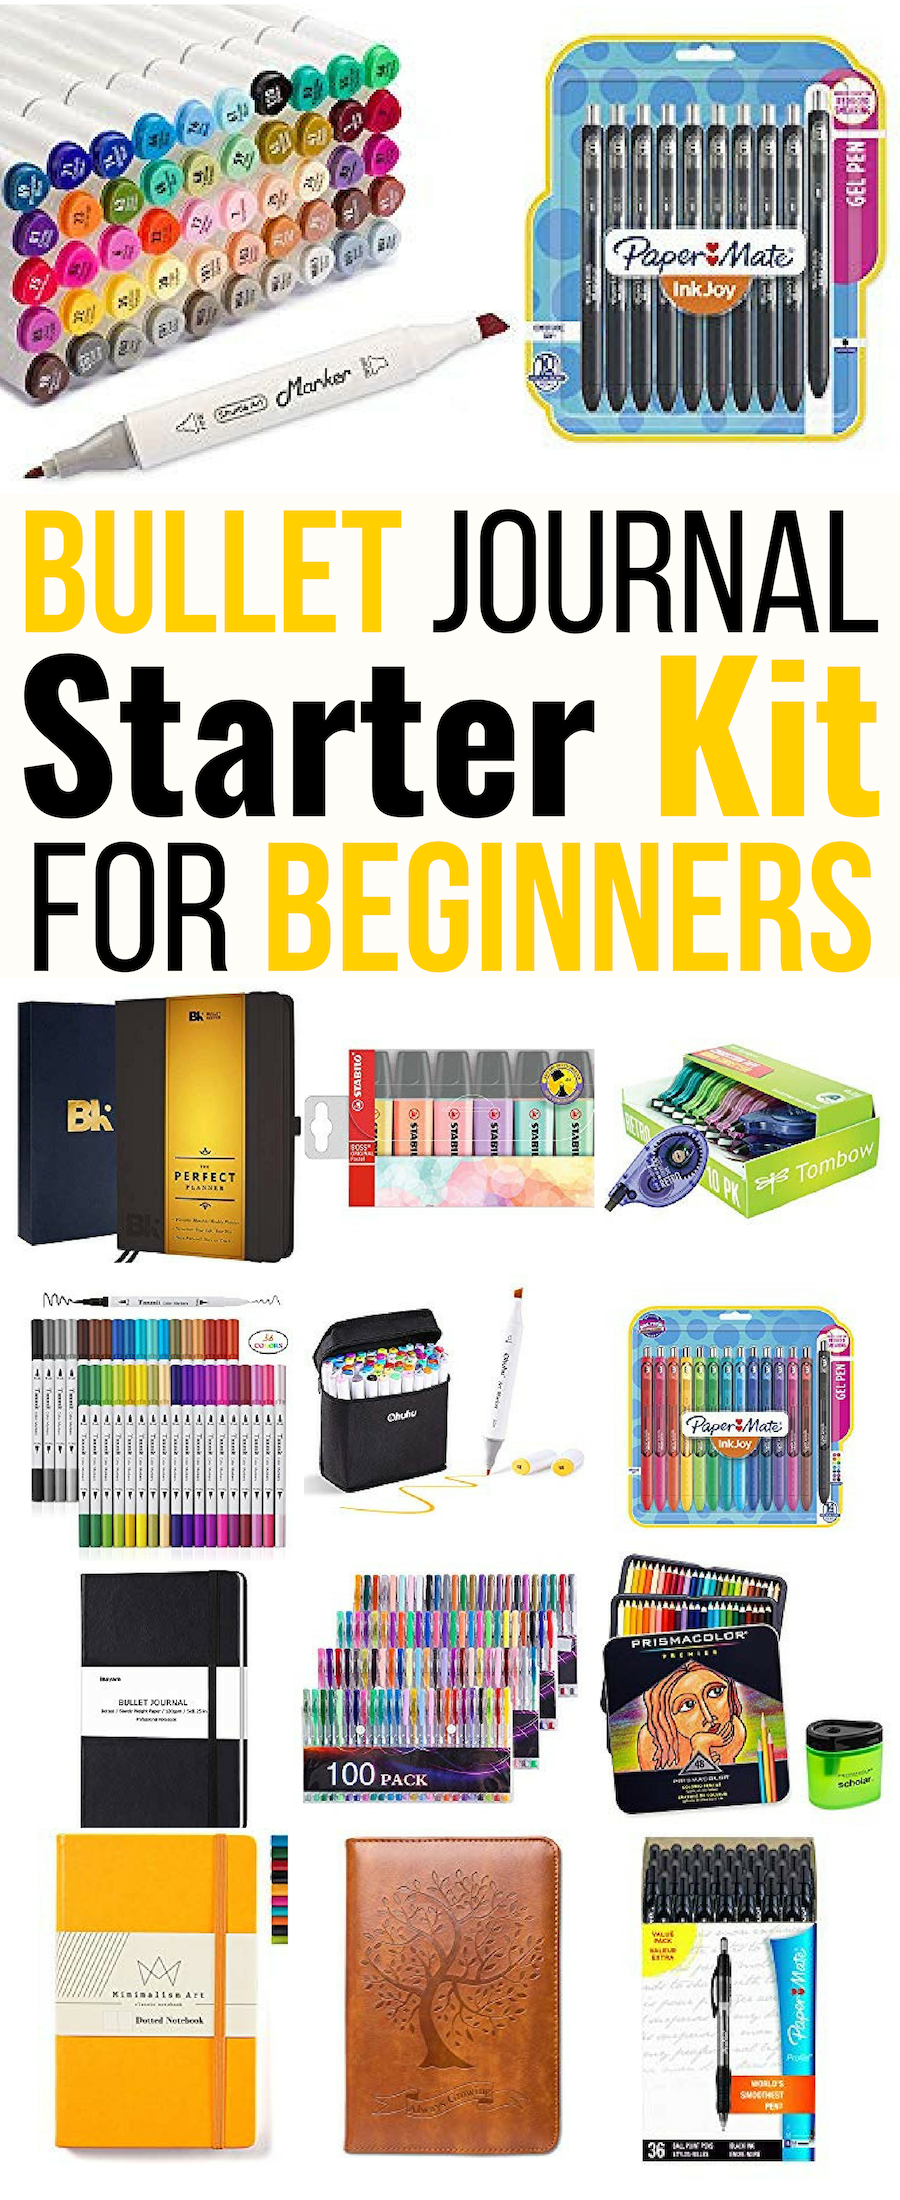 Complete Bullet Journal Starter Kit For Beginners And Beyond #septemberbulletjournalcover